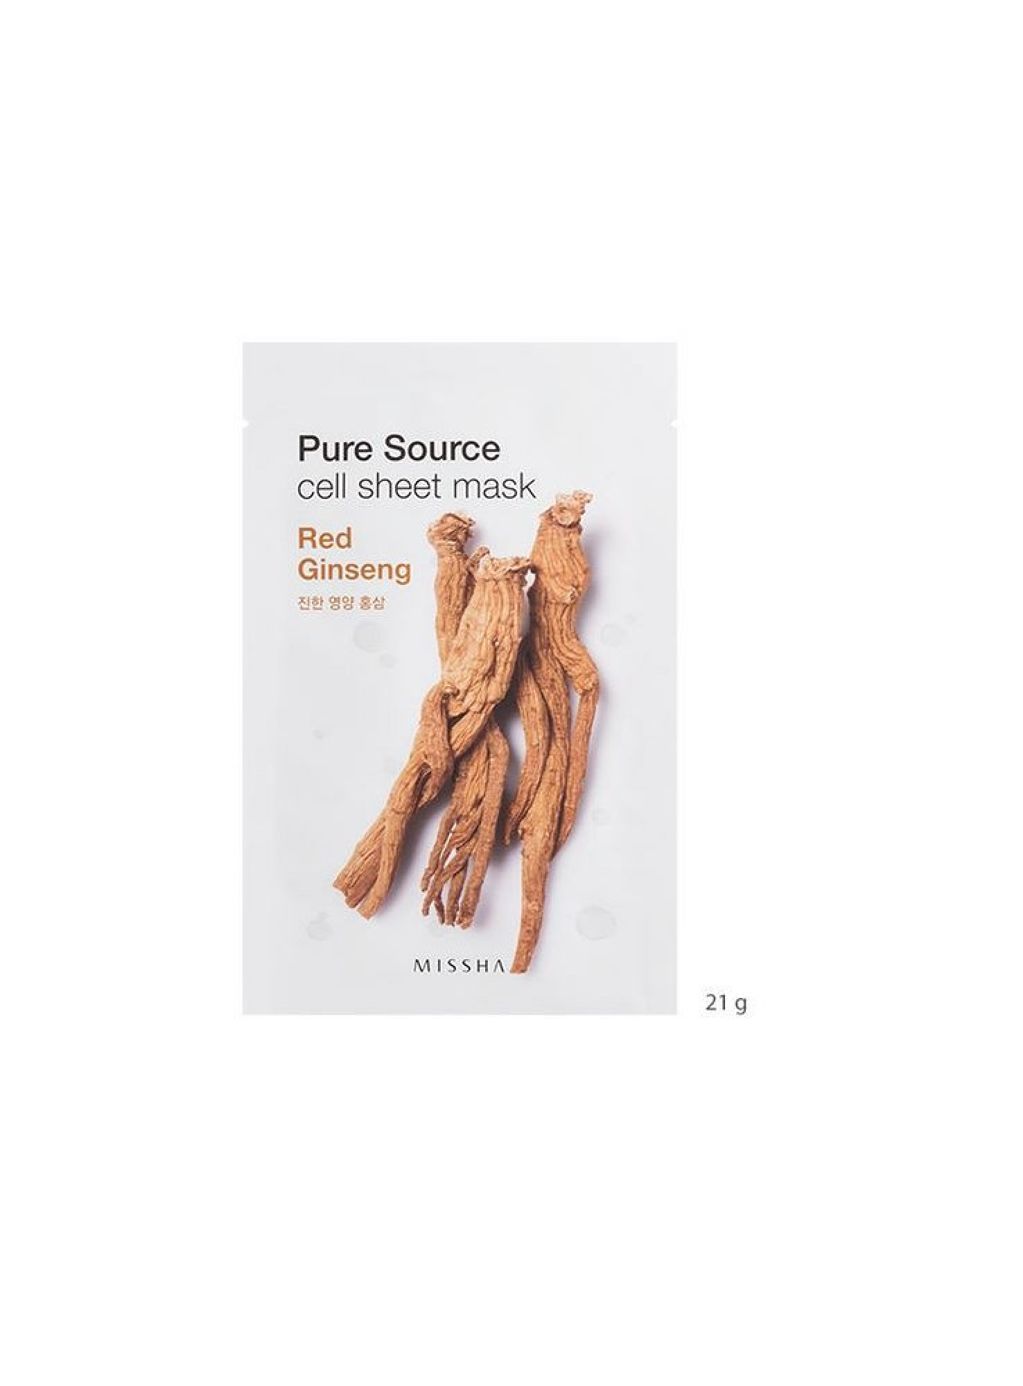 MISSHA Pure Source Cell Sheet Mask (Red Ginseng) - 64a8e-pure-source-cell-sheet-mask-red-ginseng.jpg